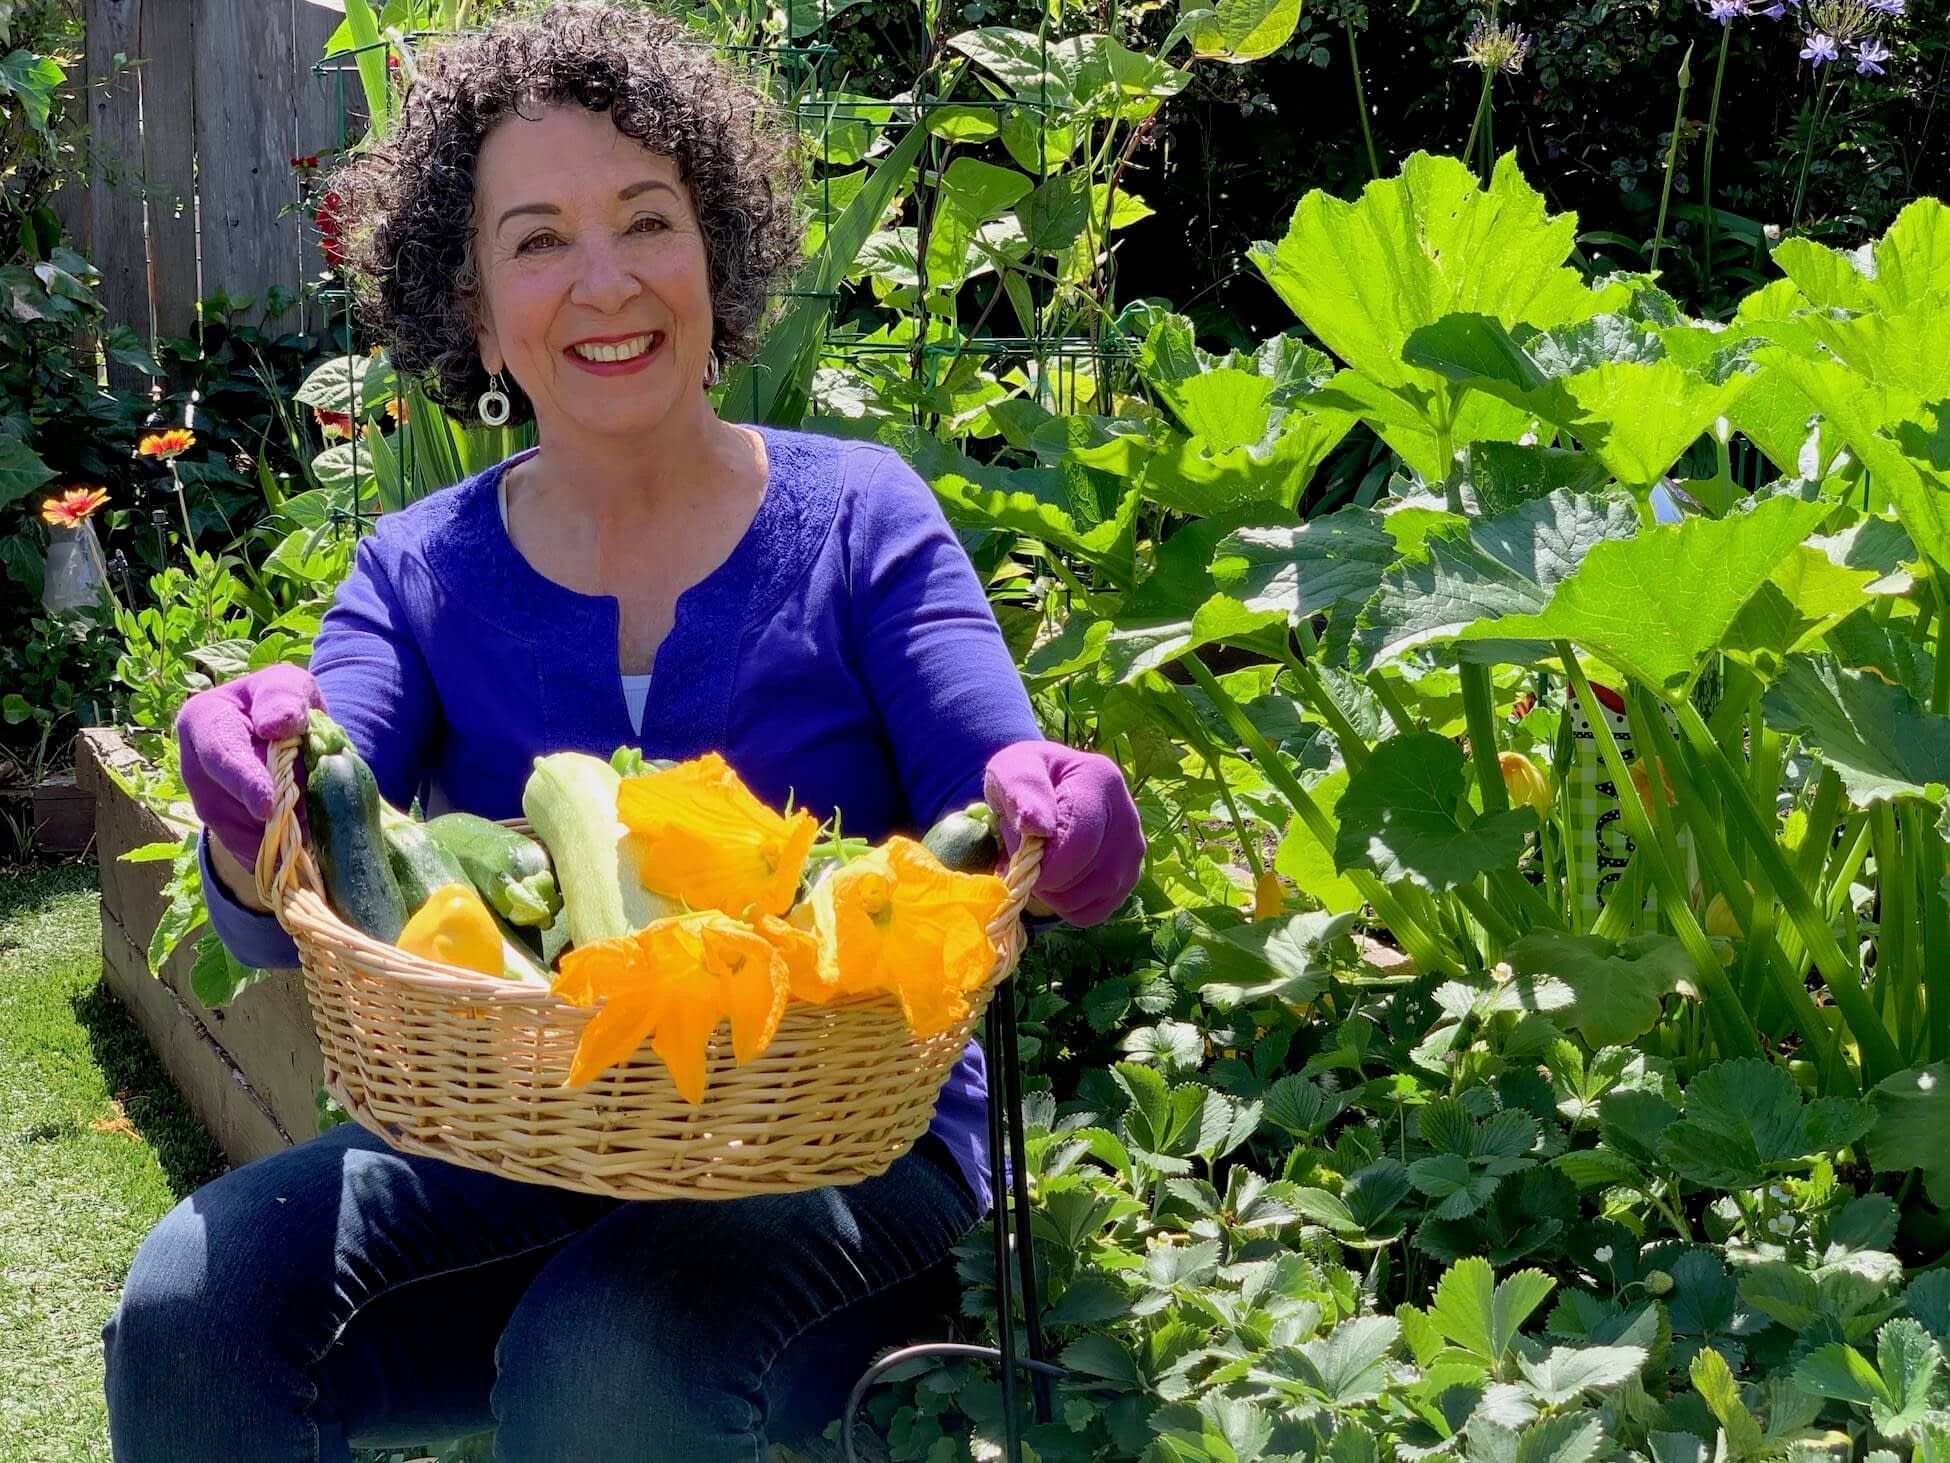 Author and gardener Toni Gattone shows off a basket of vegetables